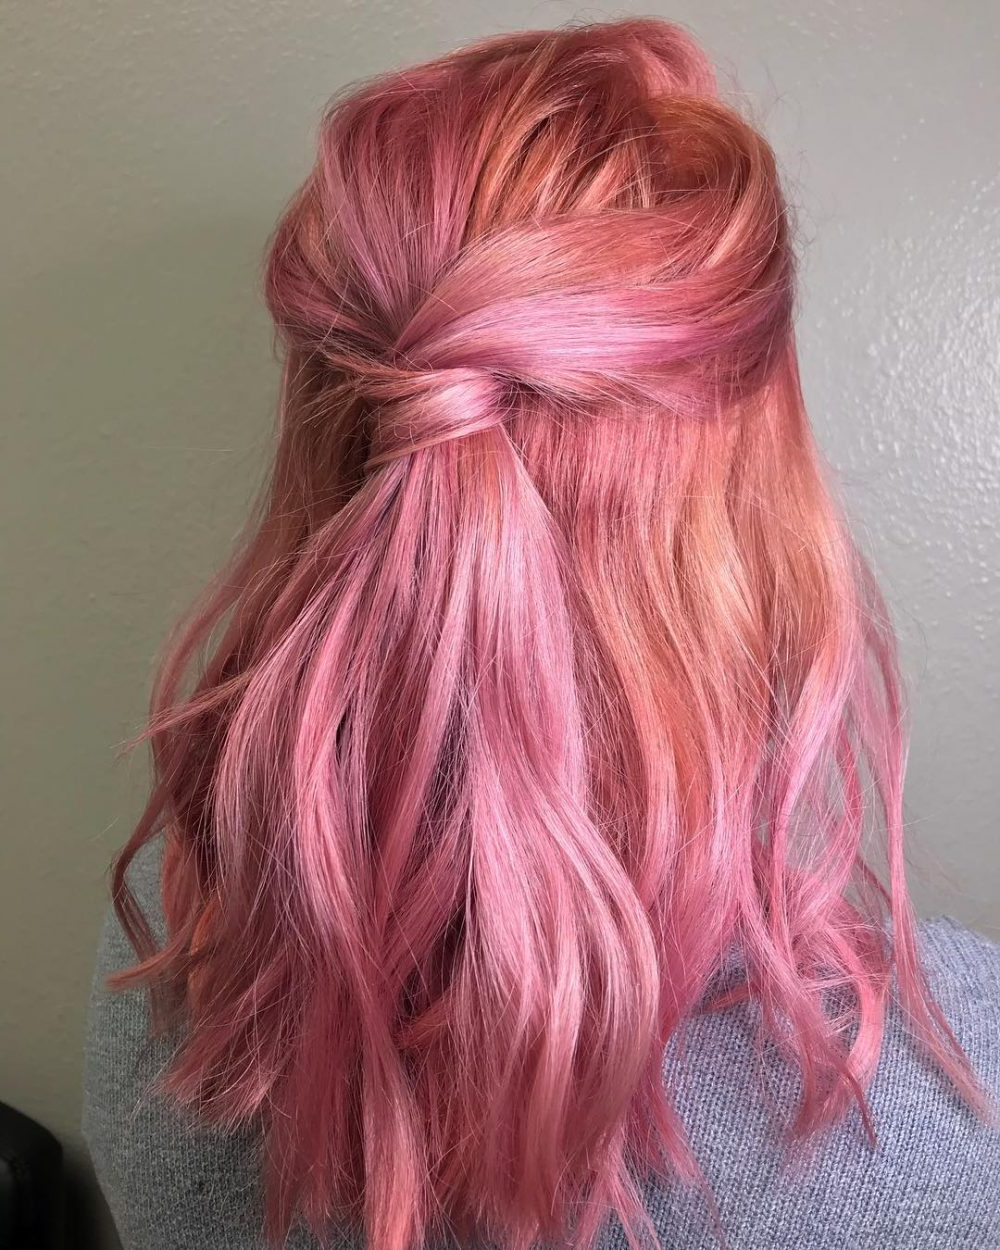 Widely Used Medium Hairstyles With Red Hair With Regard To 28 Cute Hairstyles For Medium Length Hair (Popular For 2019) (View 20 of 20)